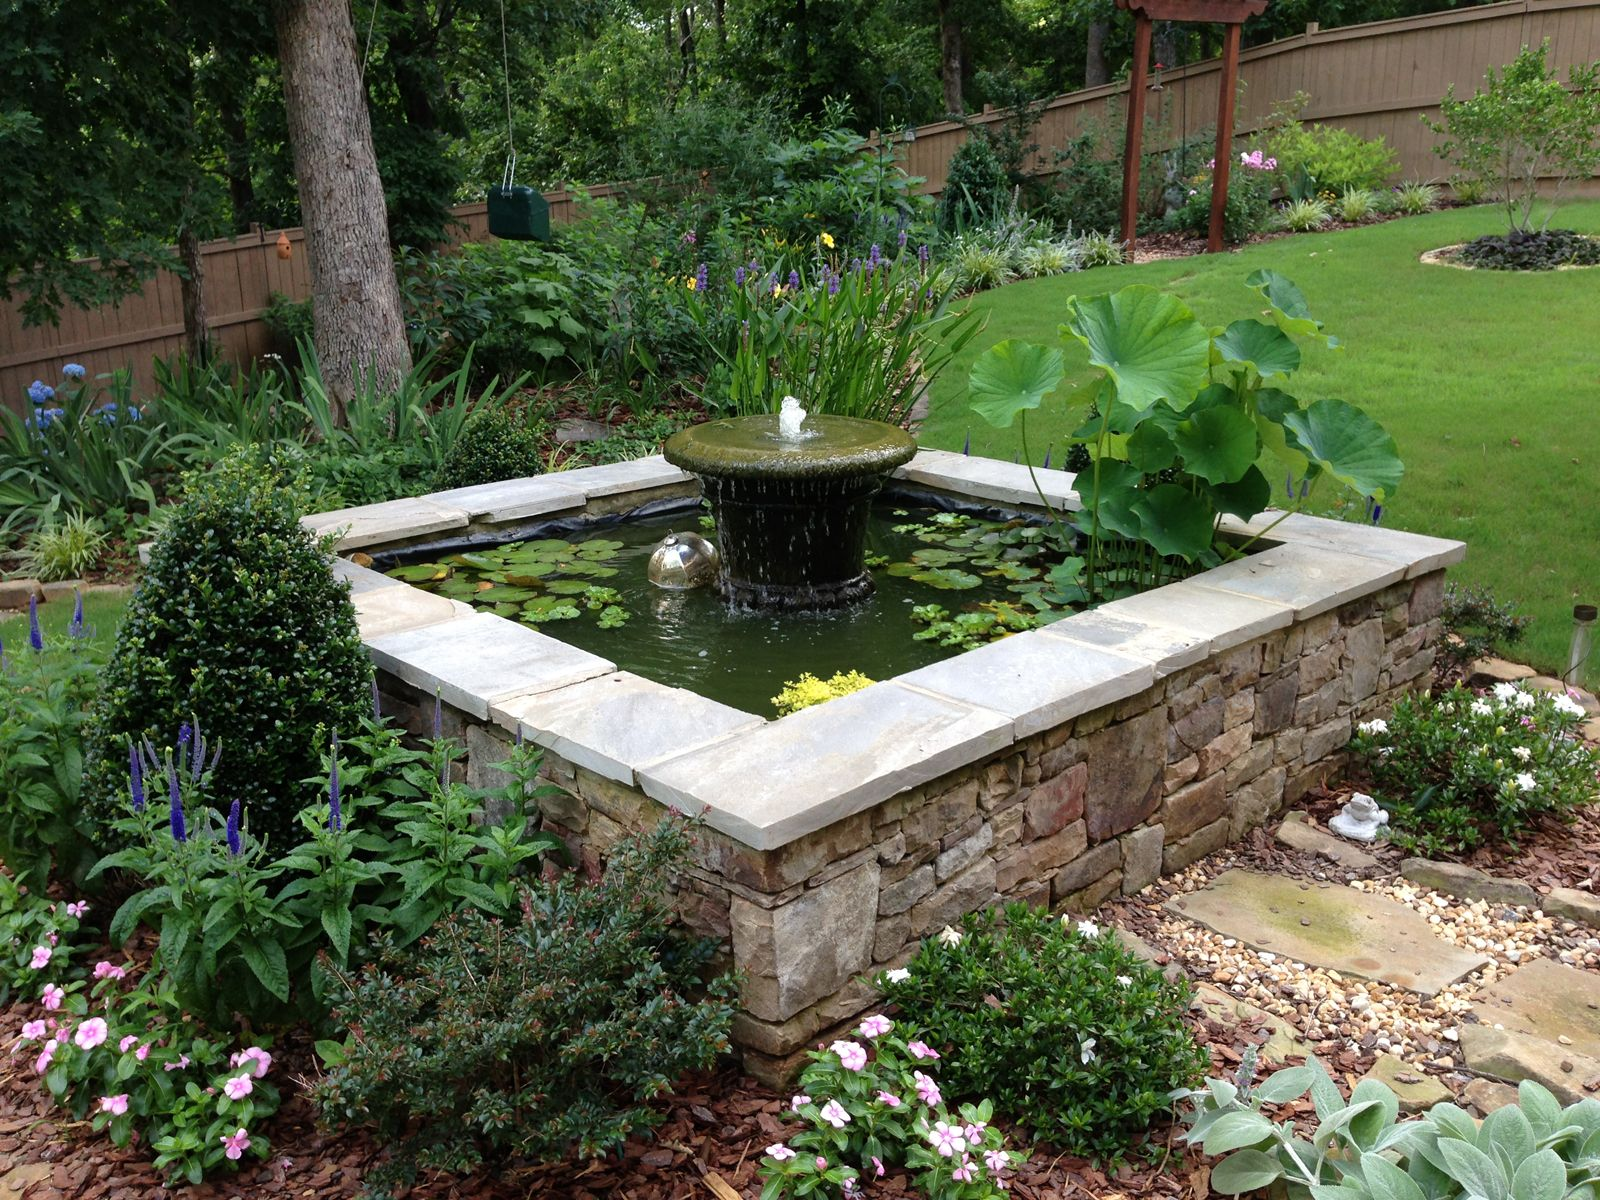 Square water pool carol bill 39 s garden in georgia for Square pond ideas